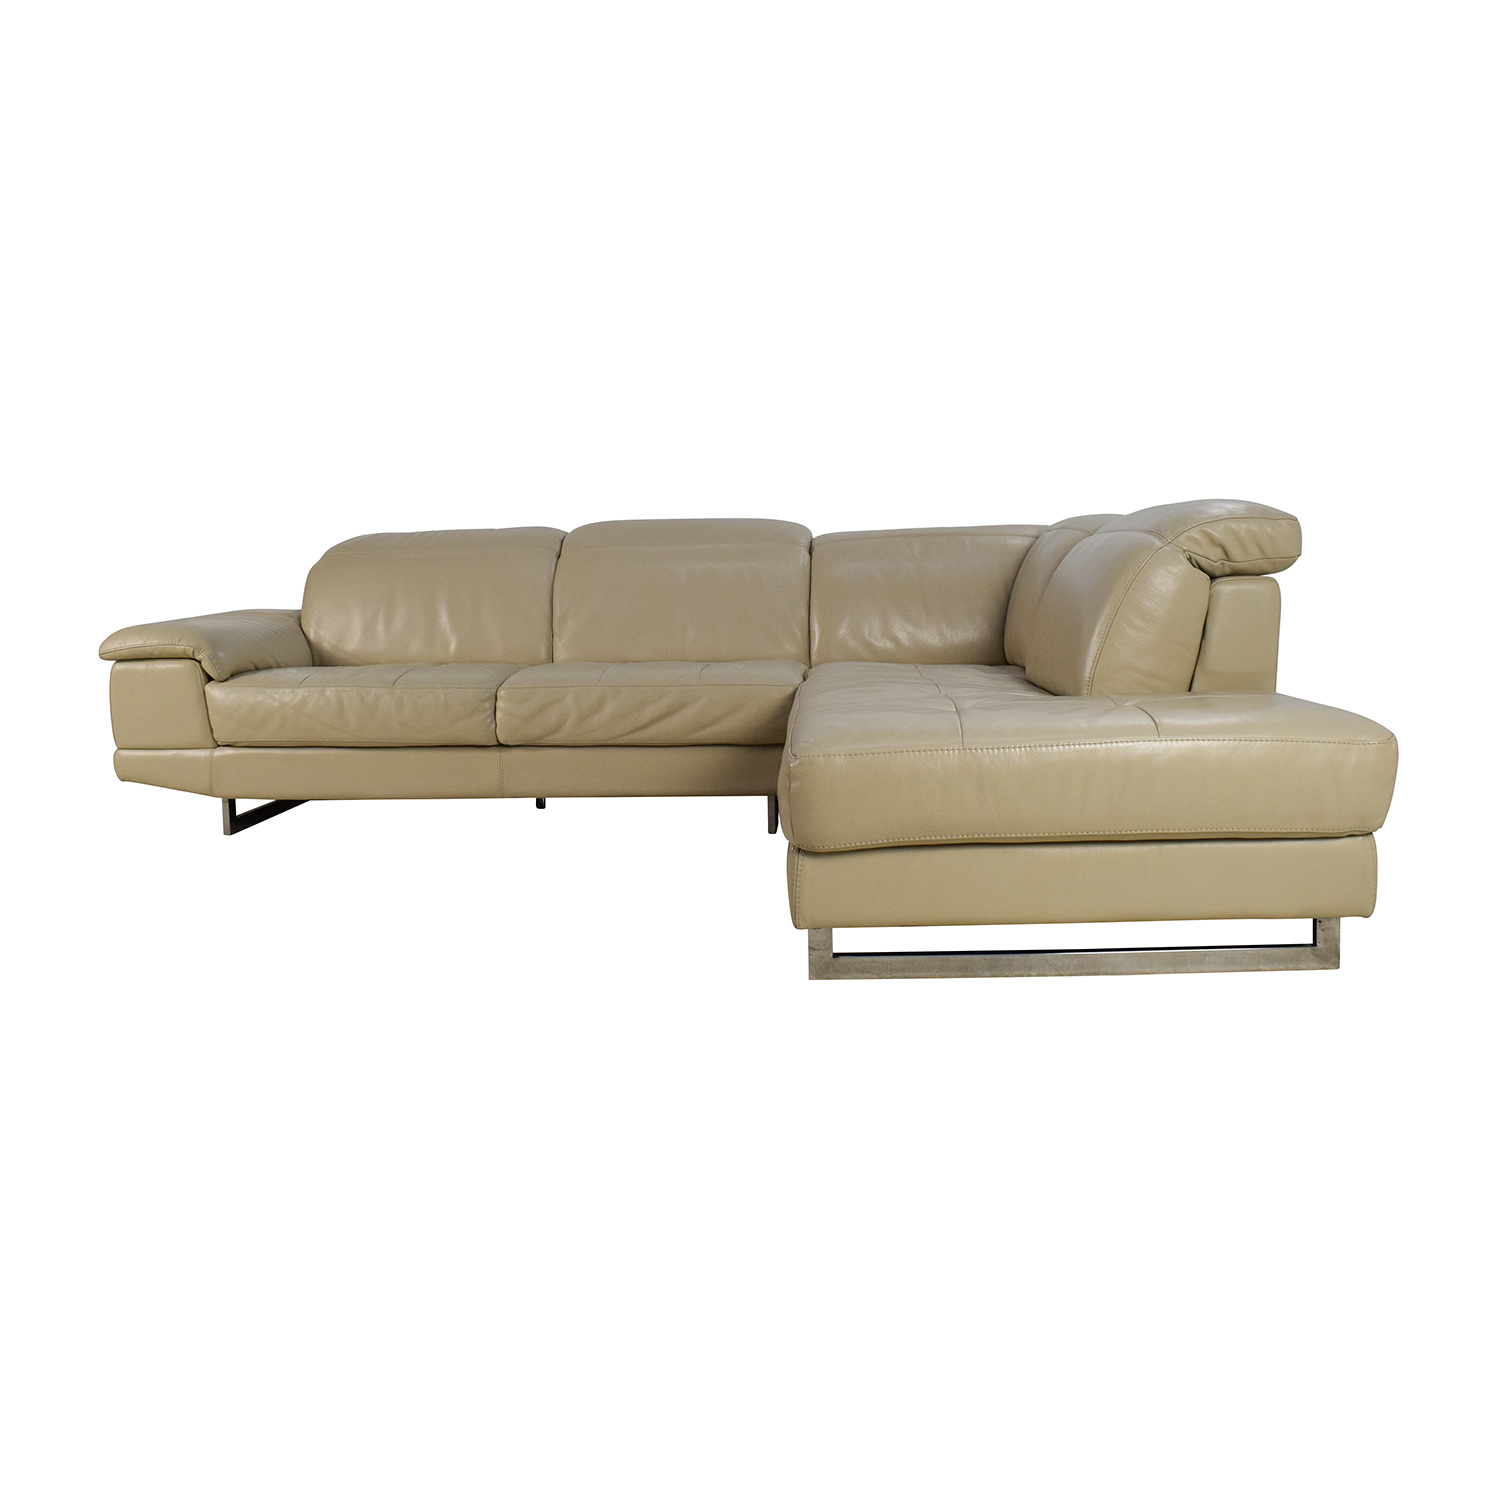 Sofa Grau Online 83 Off Beige Italian Leather Couch With Adjustable Headrests Sofas